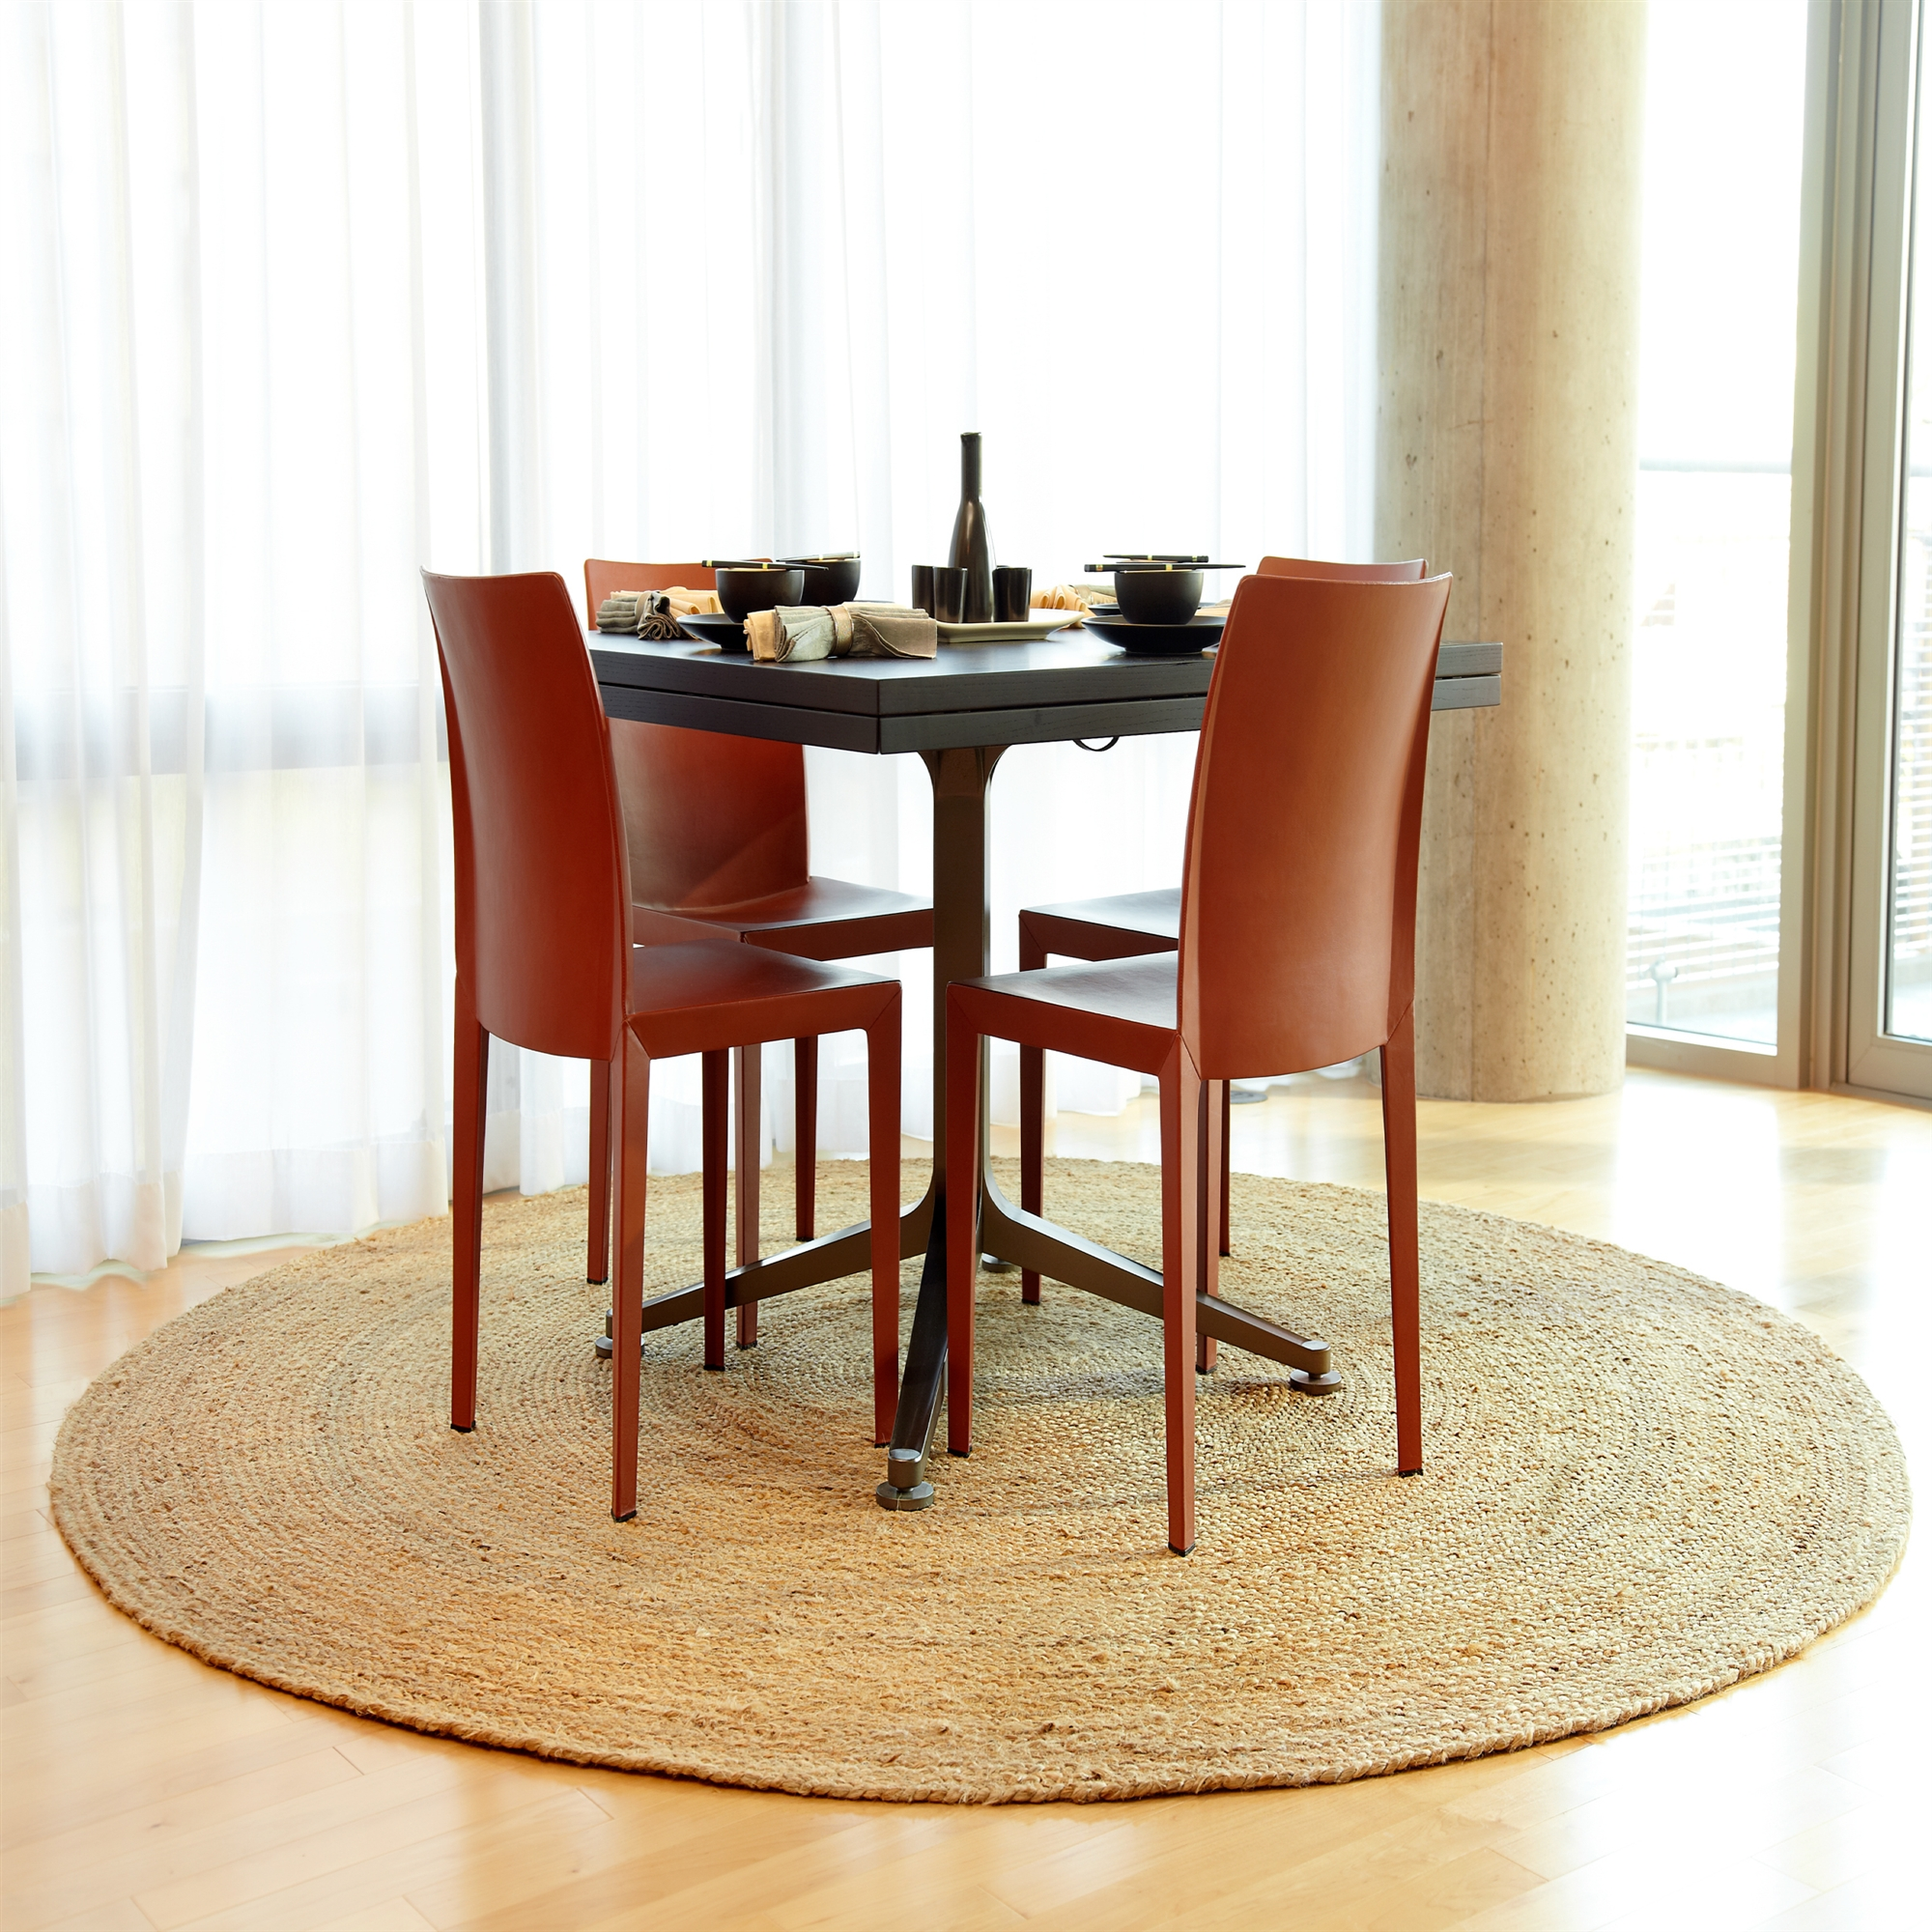 Round Jute Sisal Rug Ikea Small Dining Room Set Red Chairs Black Table